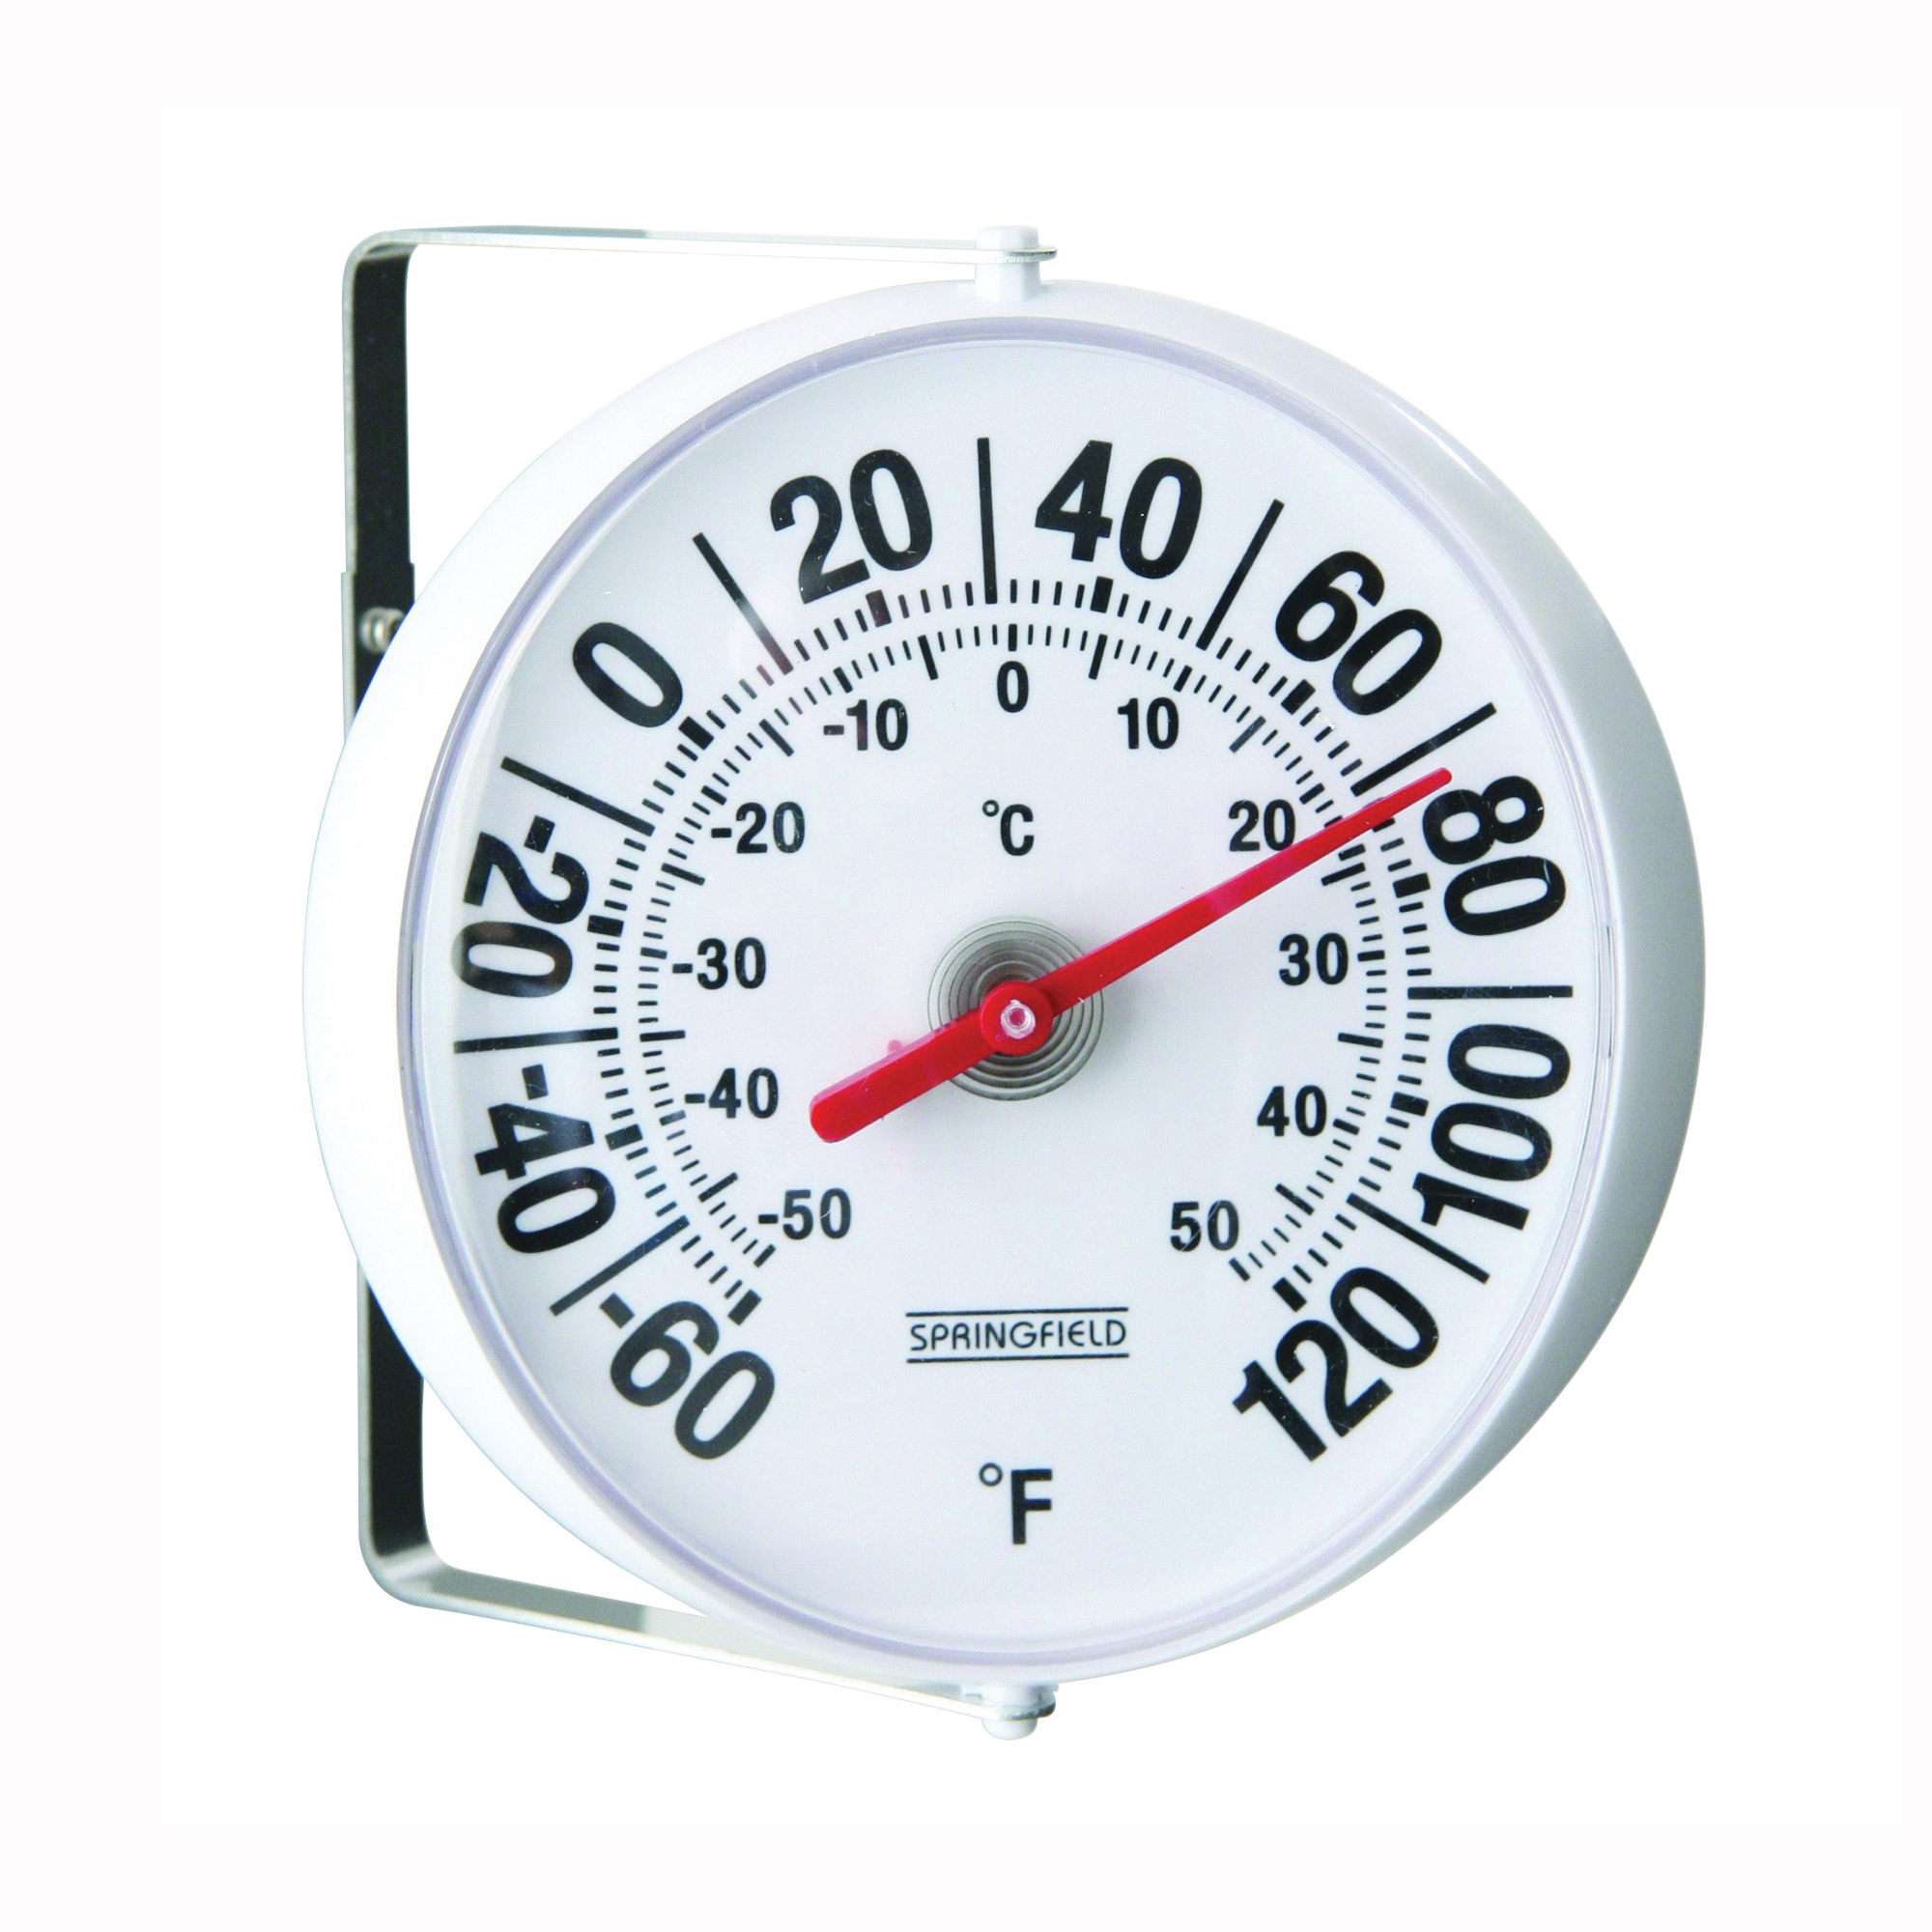 Picture of Taylor 90100 Thermometer, Resin Casing